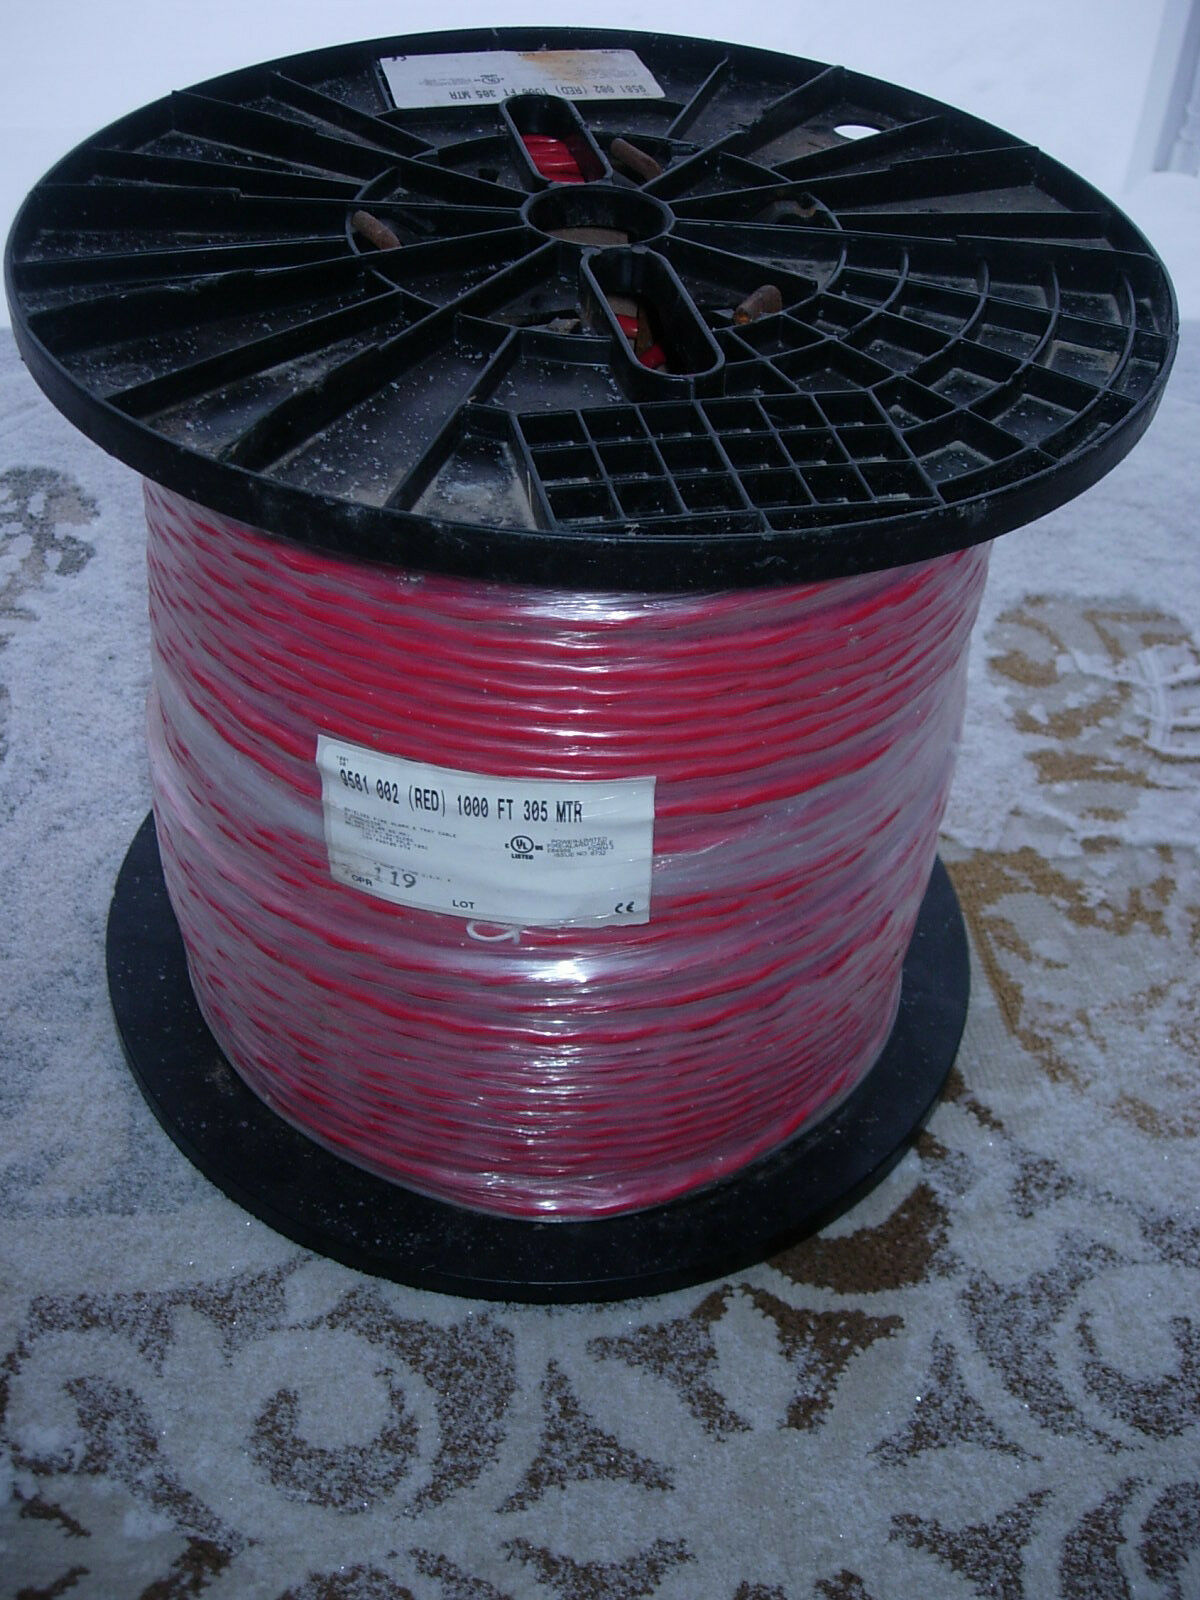 Belden Shielded Fire Alarm Cable 1000 FT 2 Cond. #14 Solid Copper ...